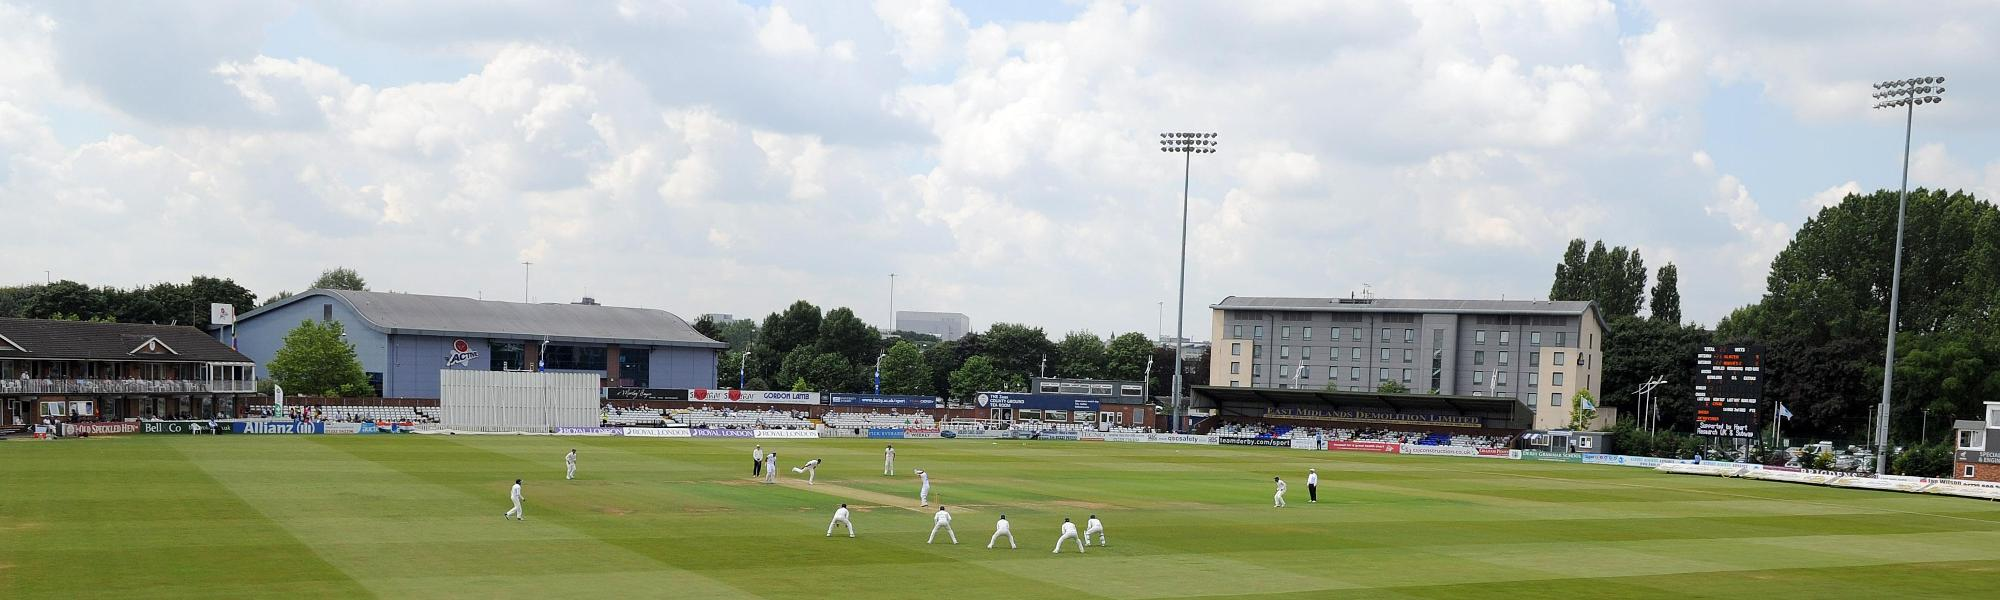 Derbyshire-county-ground.jpg